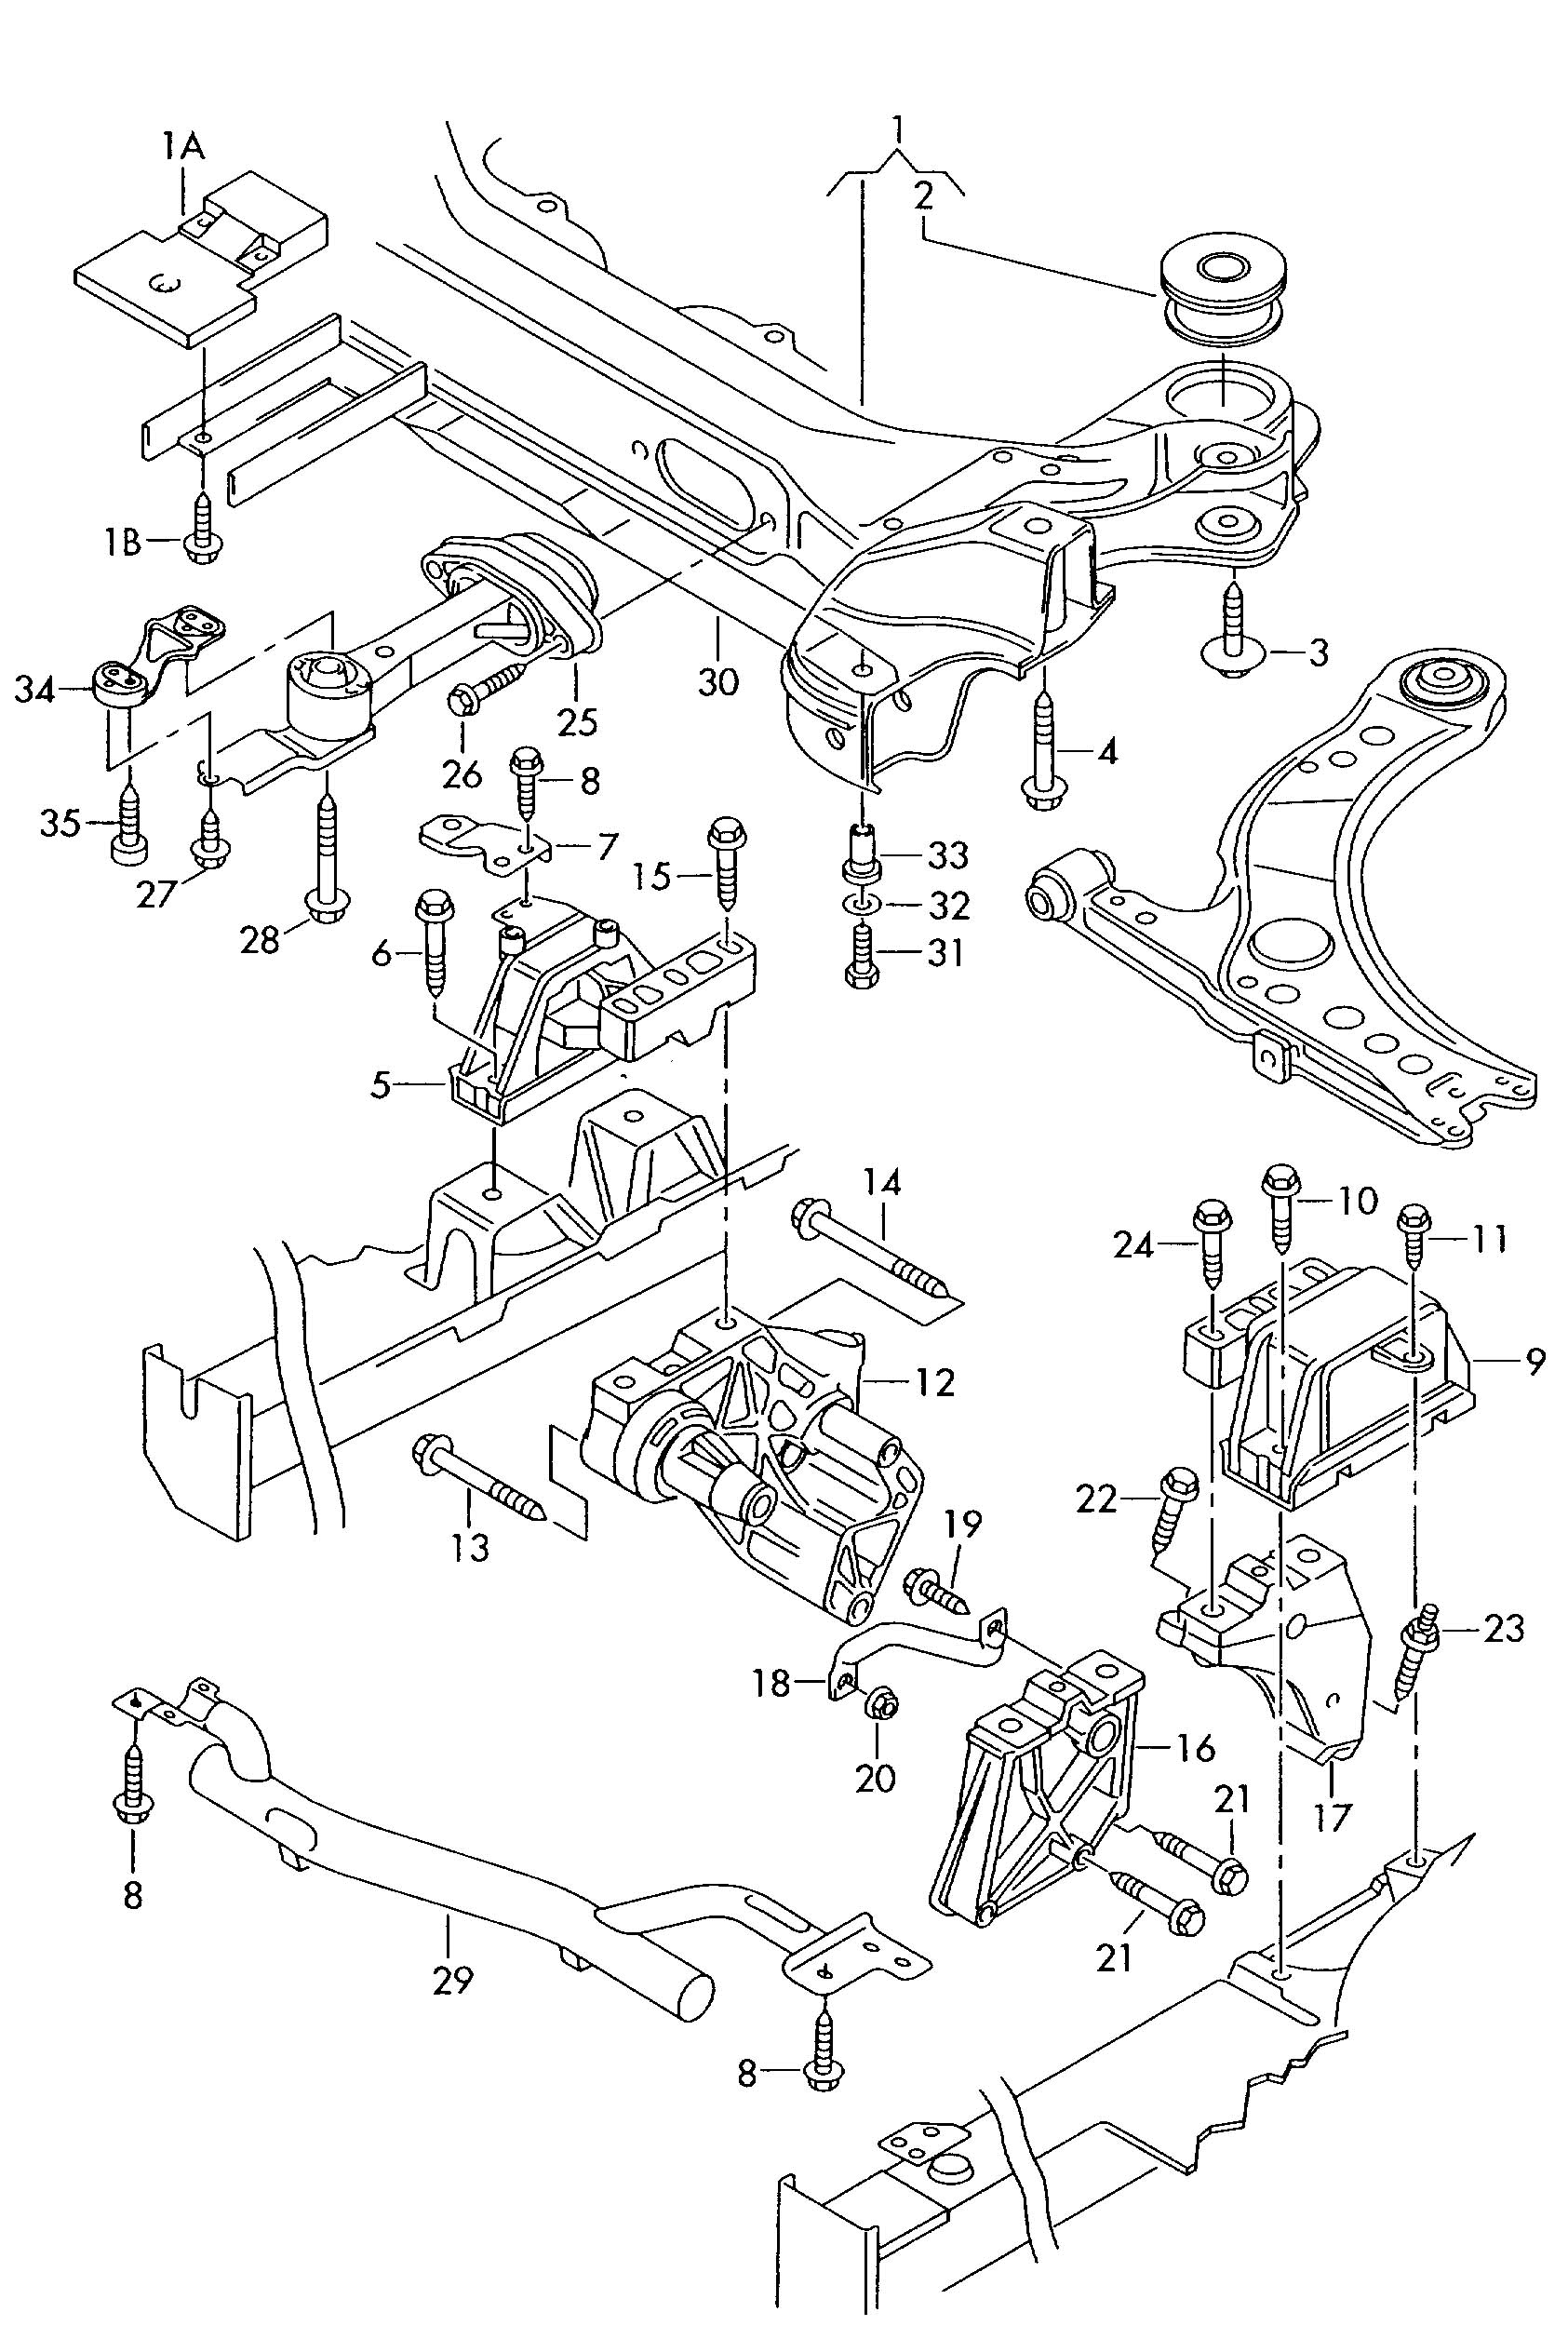 30 Volkswagen Beetle Parts Diagram